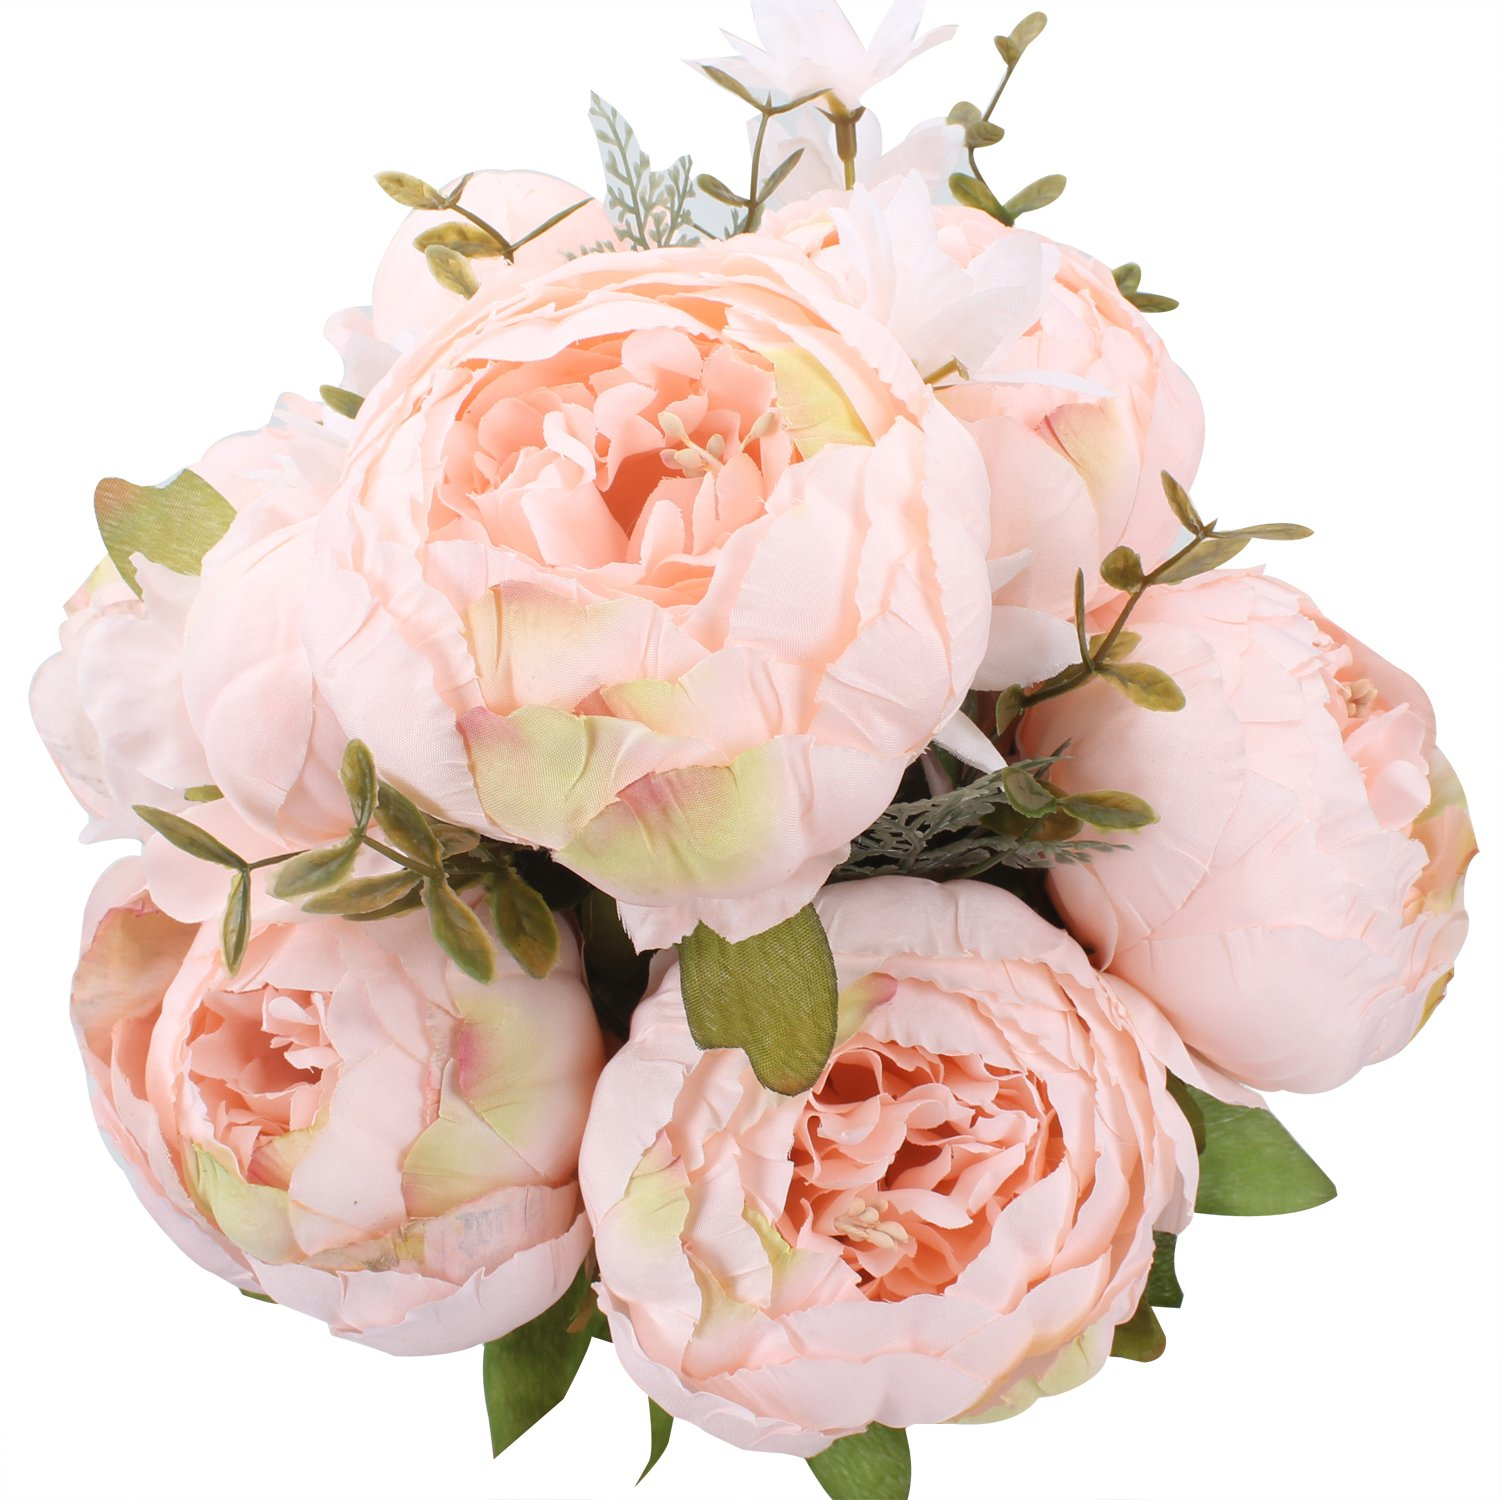 Amazon.com: Duovlo Springs Flowers Artificial Silk Peony bouquets ...